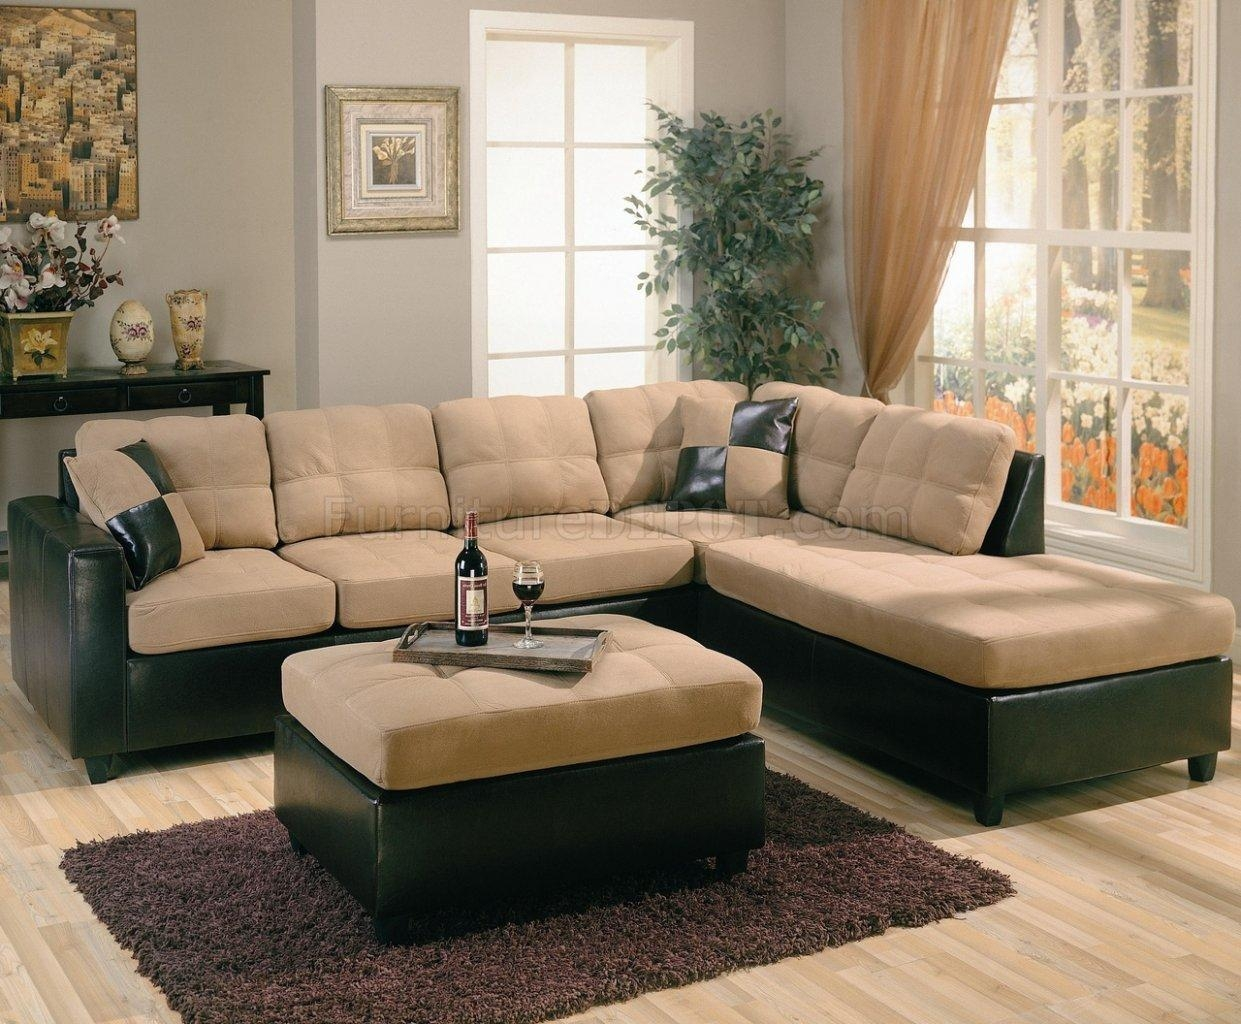 Two Tone Tan Microfiber & Dark Brown Faux Leather Sectional Sofa Regarding Faux Leather Sectional Sofas (Image 13 of 15)